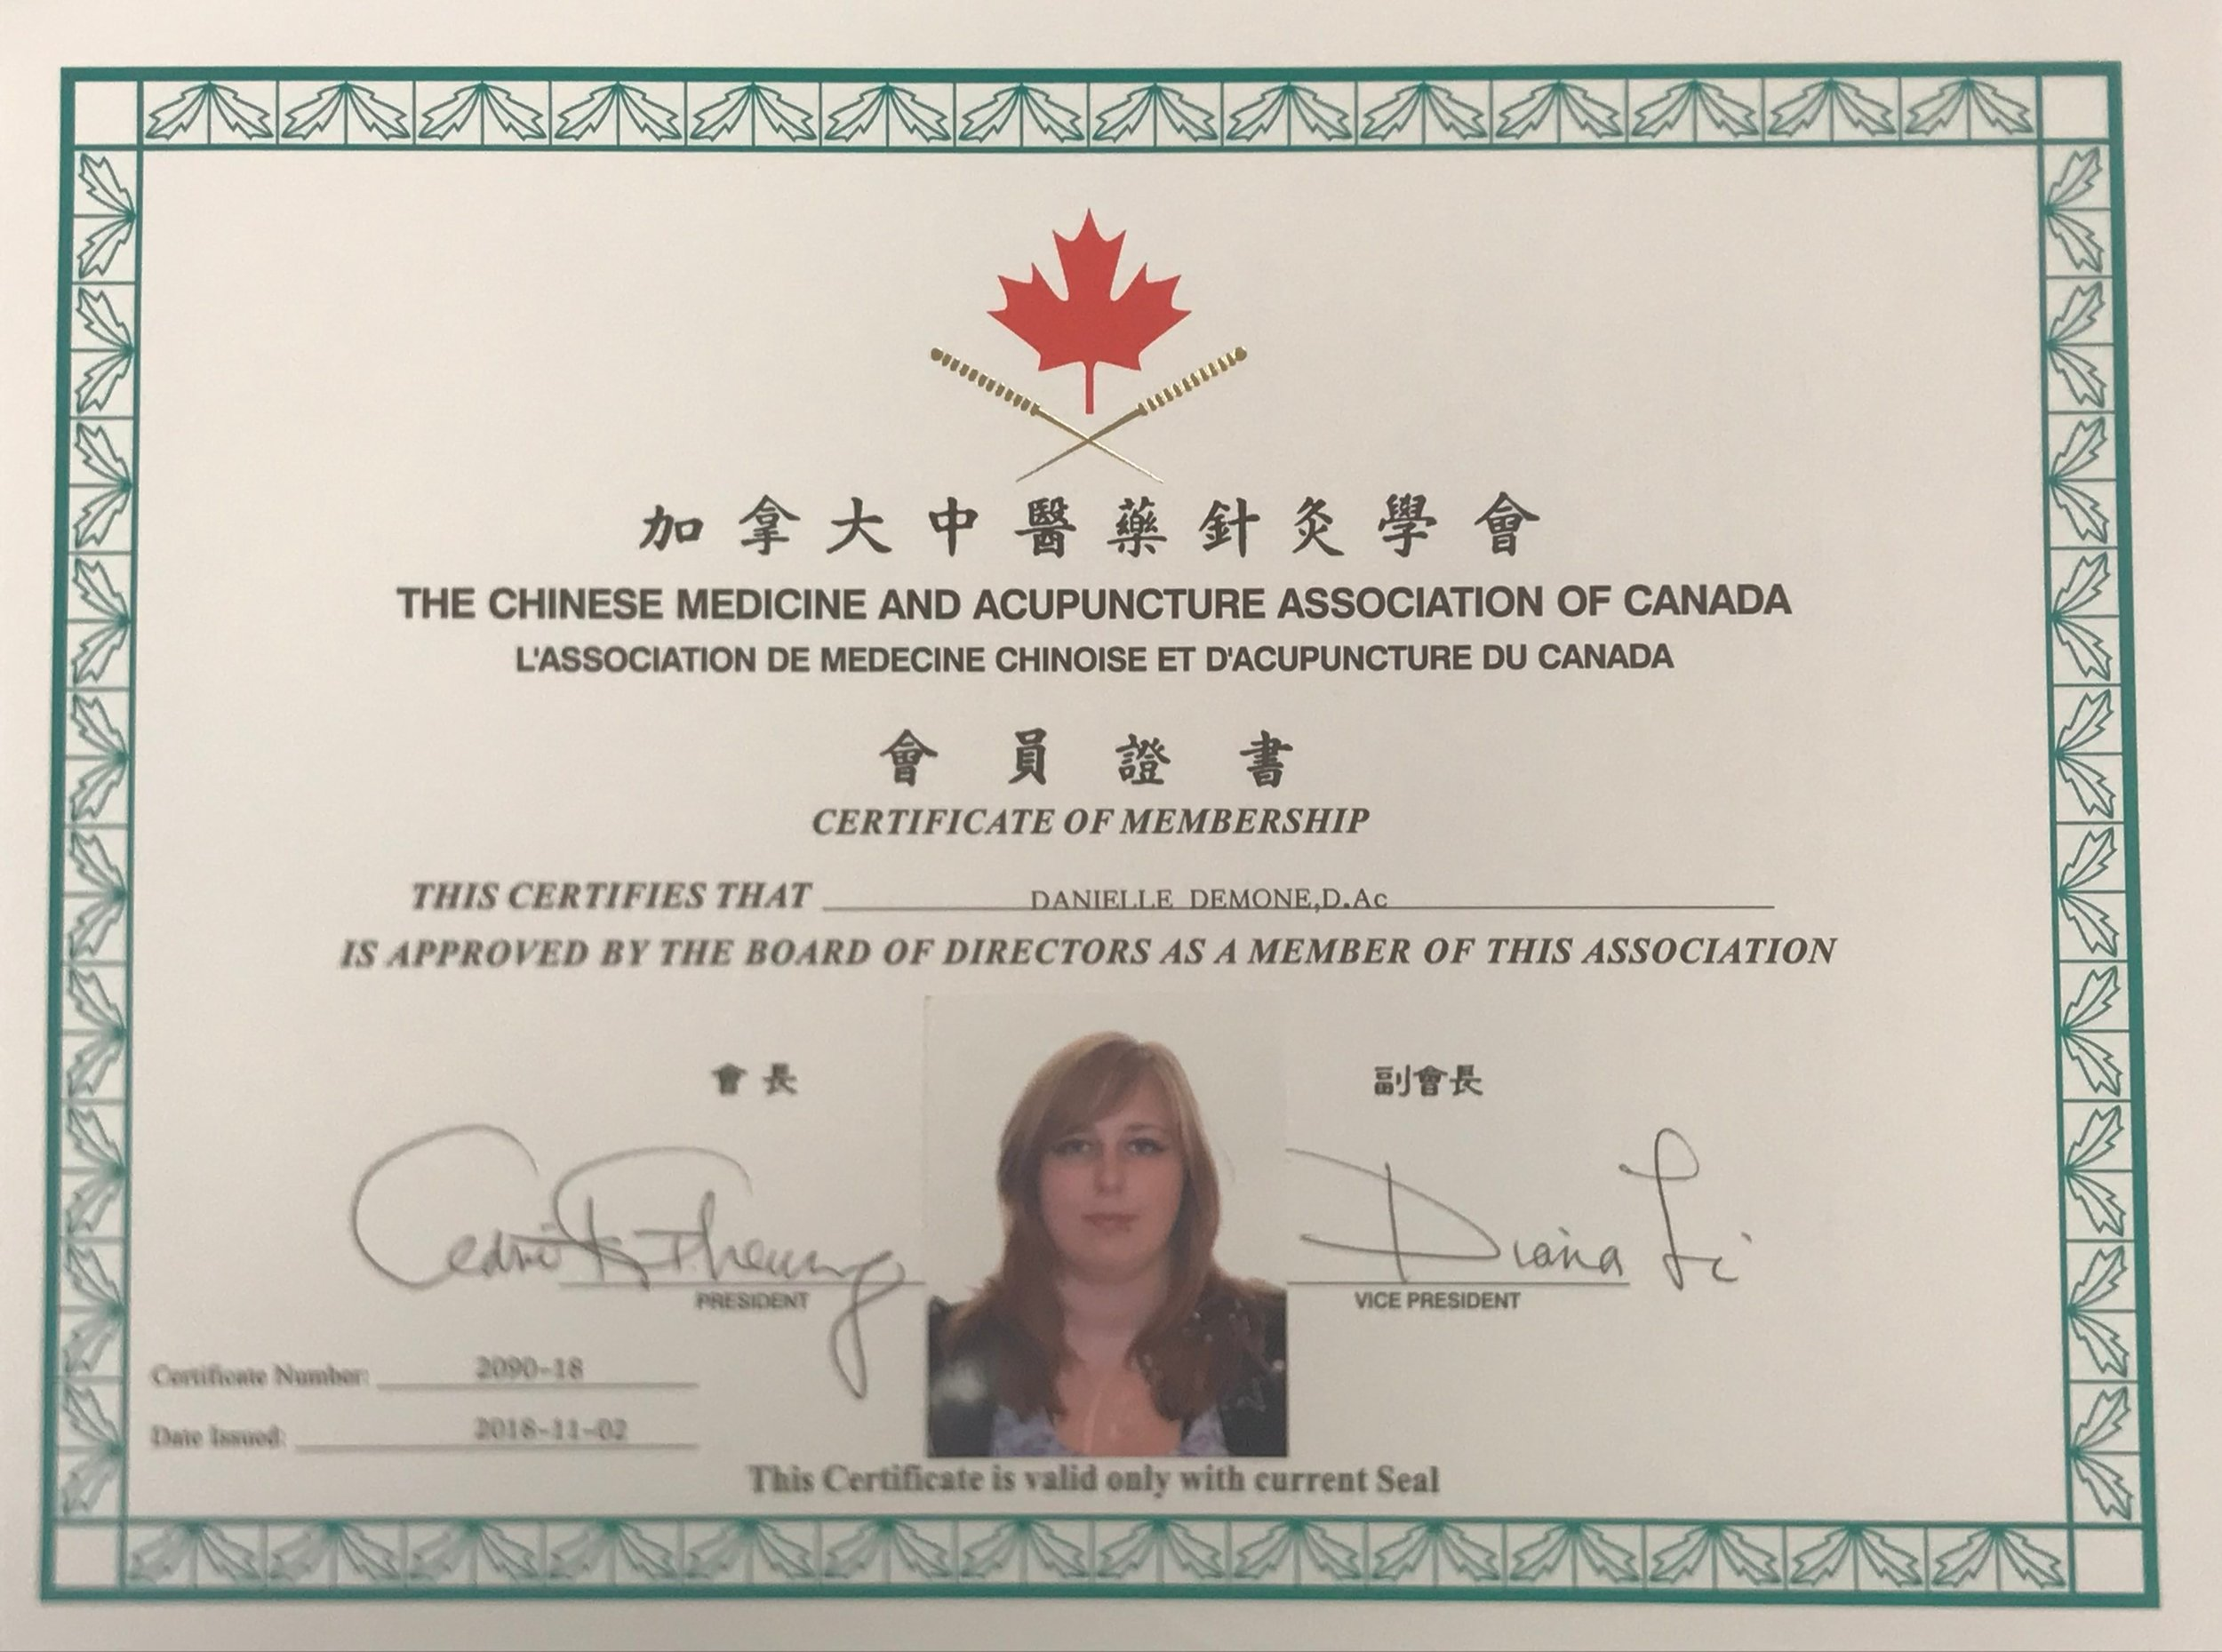 Member of The Chinese Medicine and Acupuncture Association of Canada